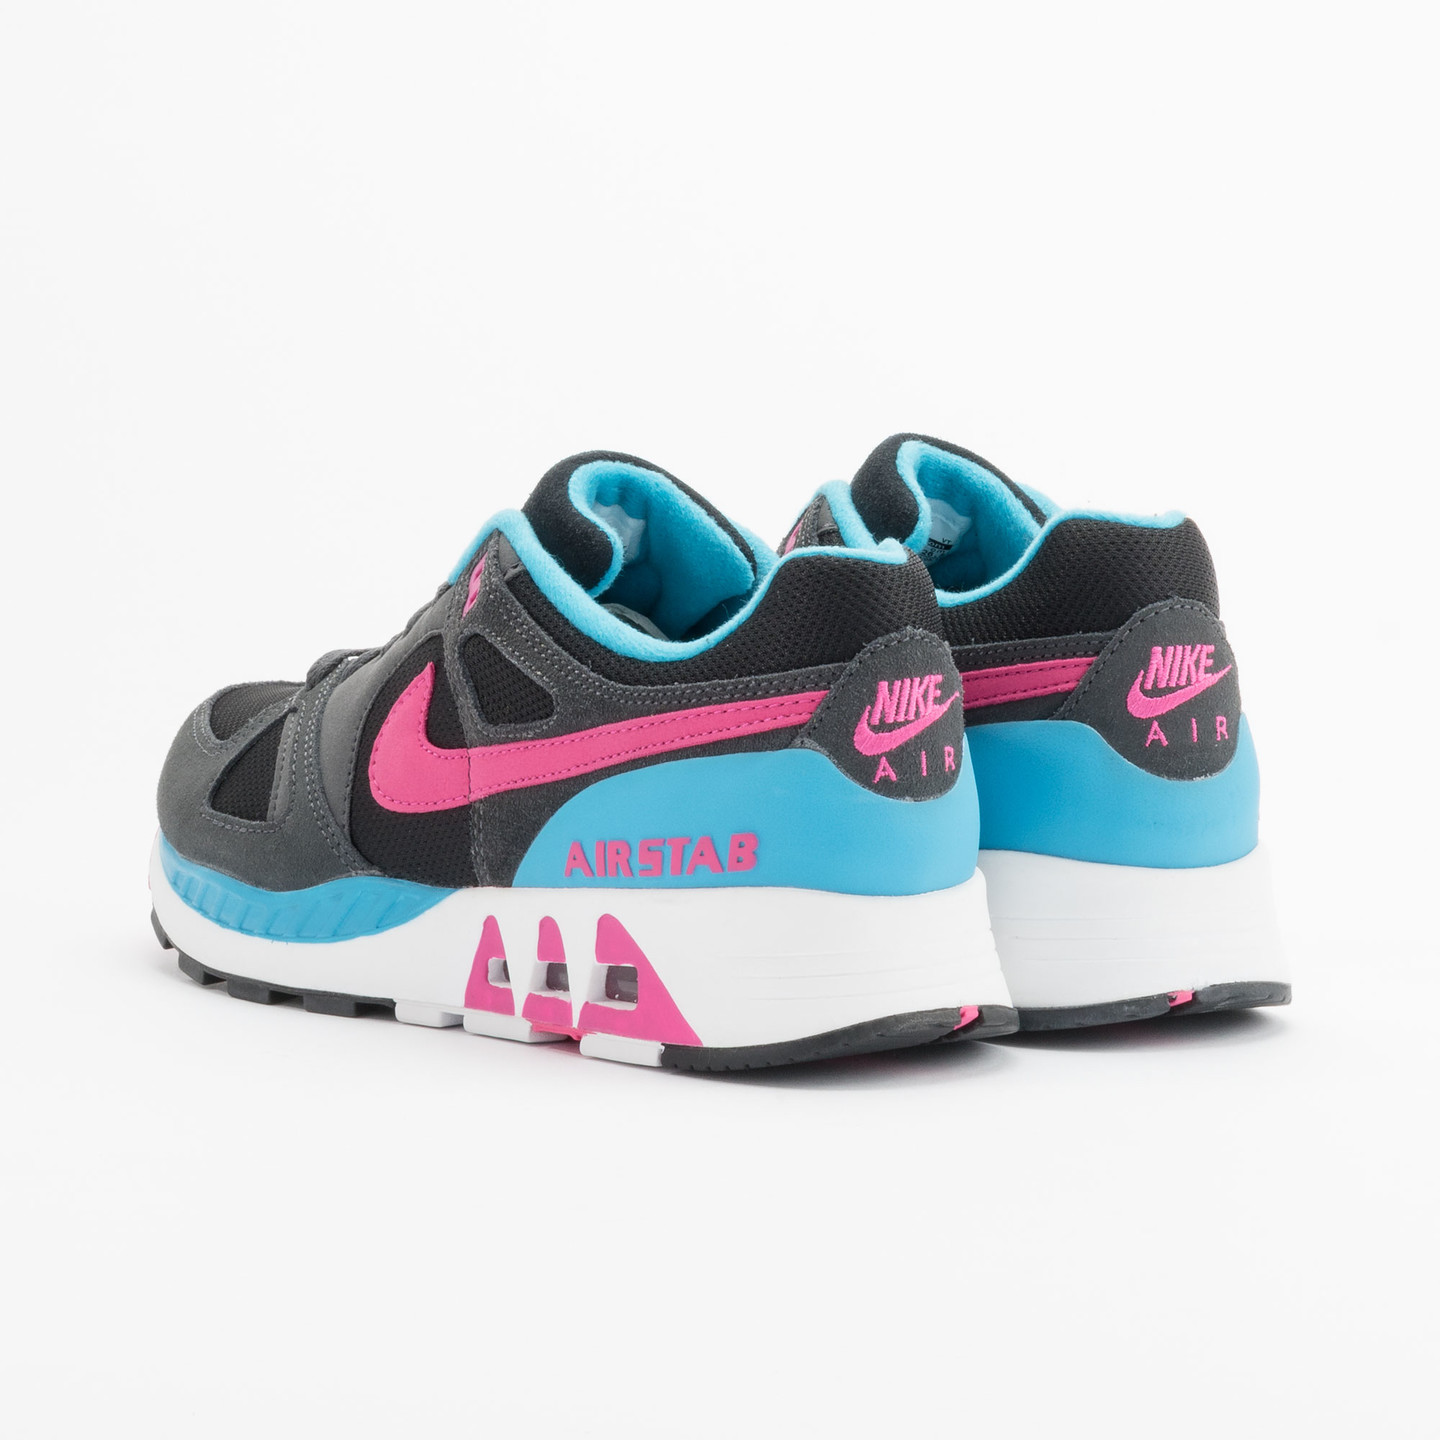 Nike Air Stab Black/Hot Pink-Anthrct-Bl Lgn 312451-004-42